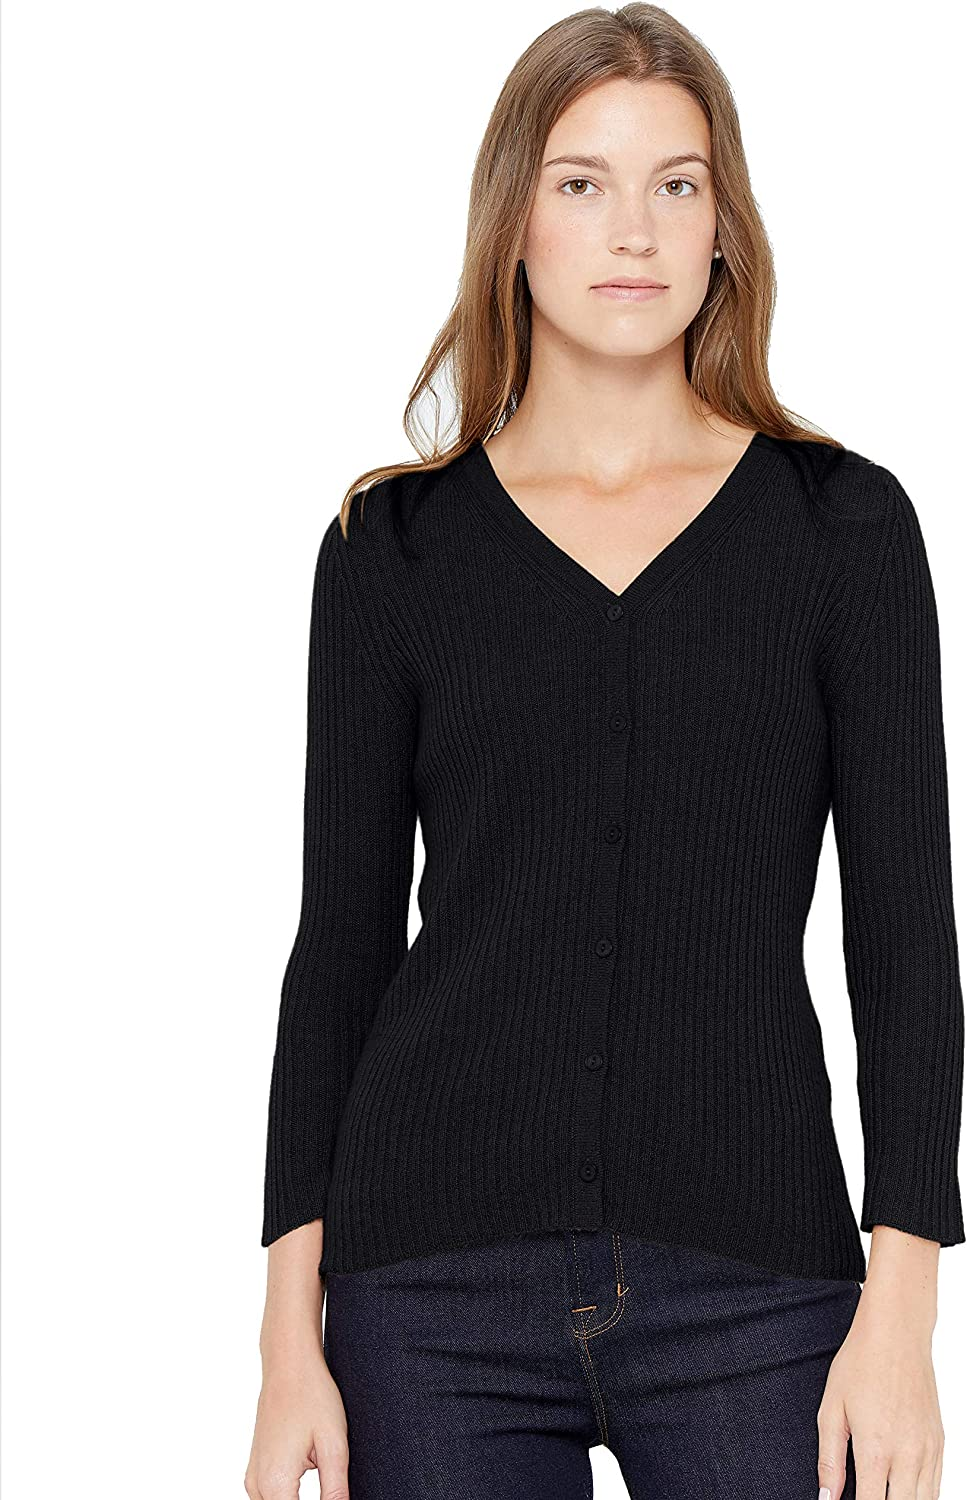 State Cashmere 3/4 Sleeve Button Down Cardigan 100% Pure Cashmere V-Neck Ribbed Sweater